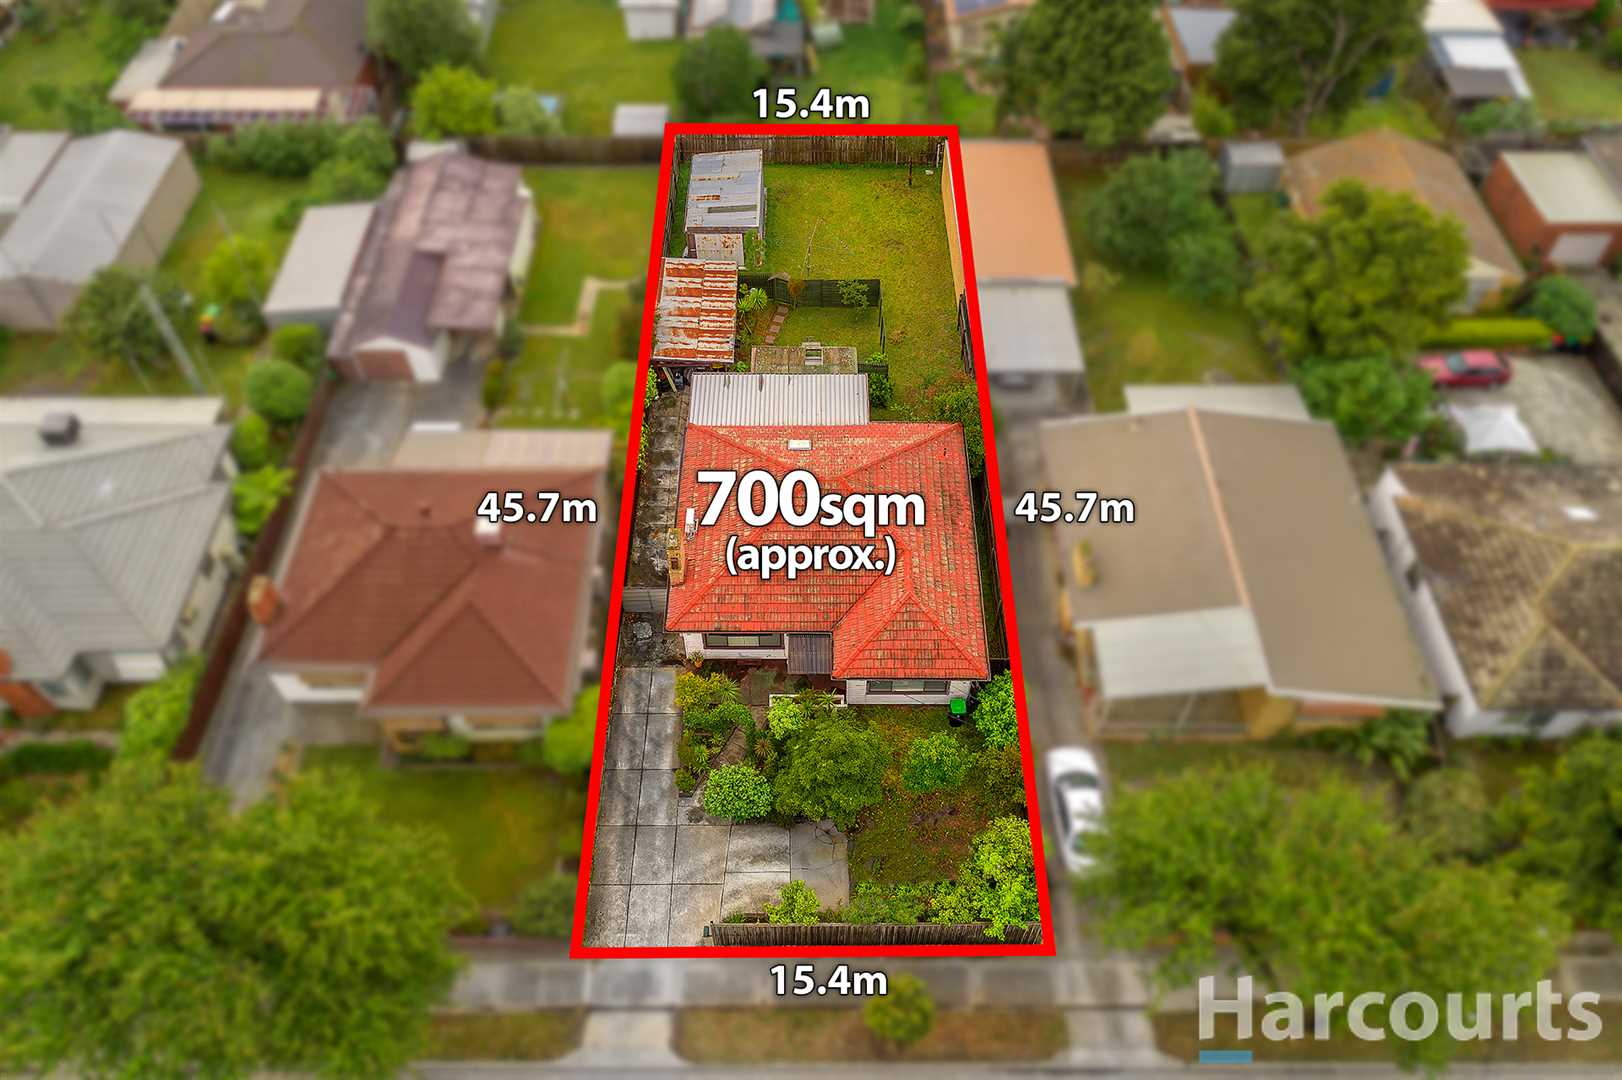 Seize the Opportunity on 700sqm*